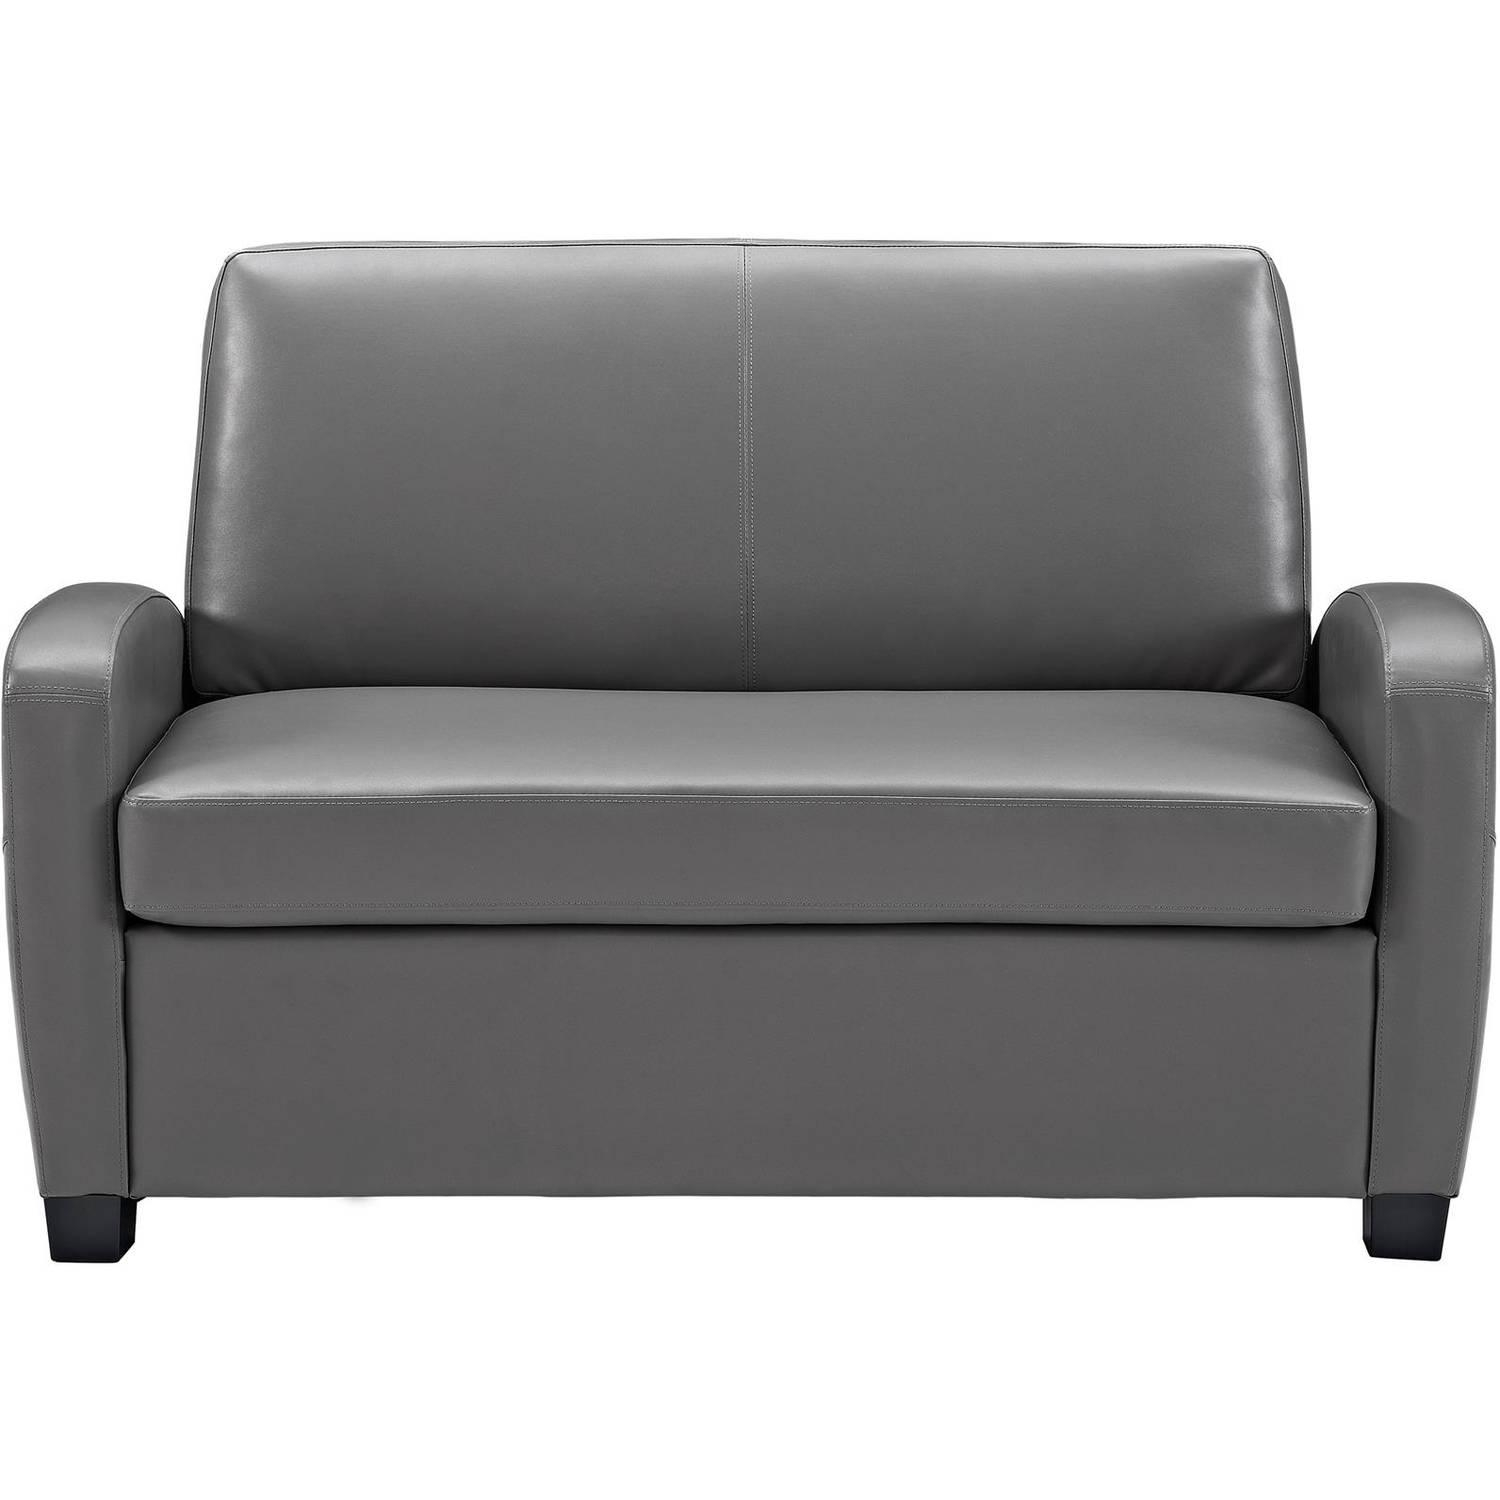 Sofas : Magnificent Chair And A Half Slipcover Black Leather In Leather Storage Sofas (View 20 of 21)